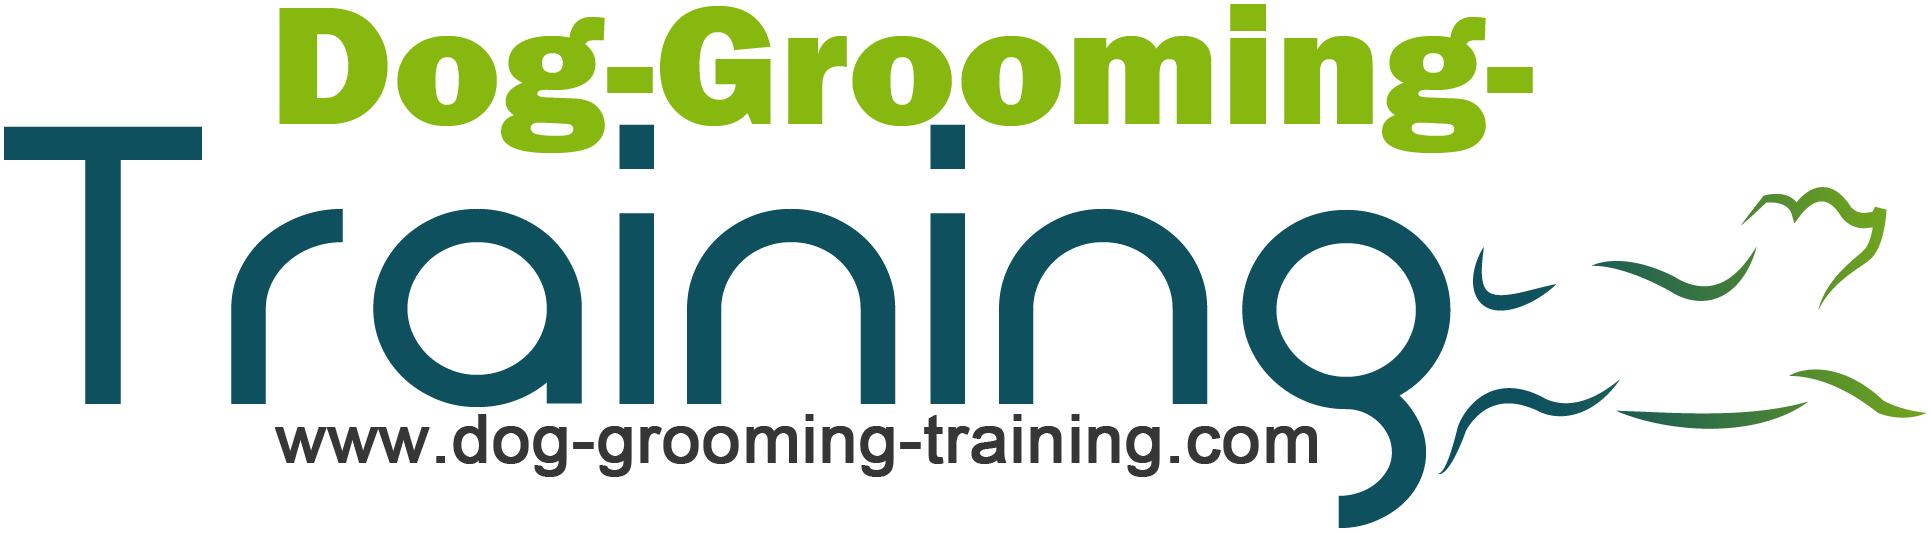 Dog Grooming Training Logo